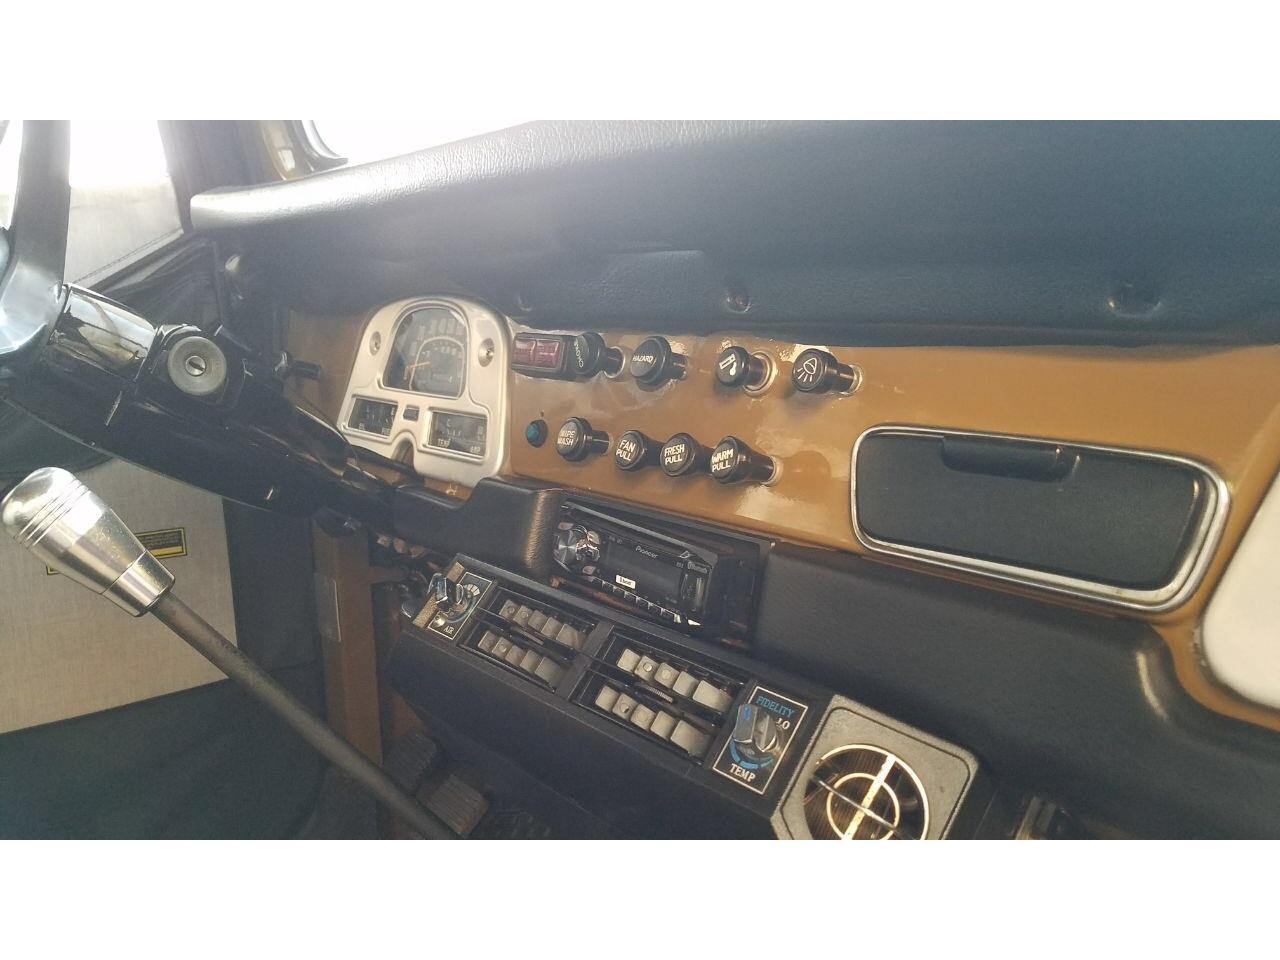 Large Picture of '80 Toyota Land Cruiser FJ located in Guayaquil Guayas - $50,000.00 - L8UU